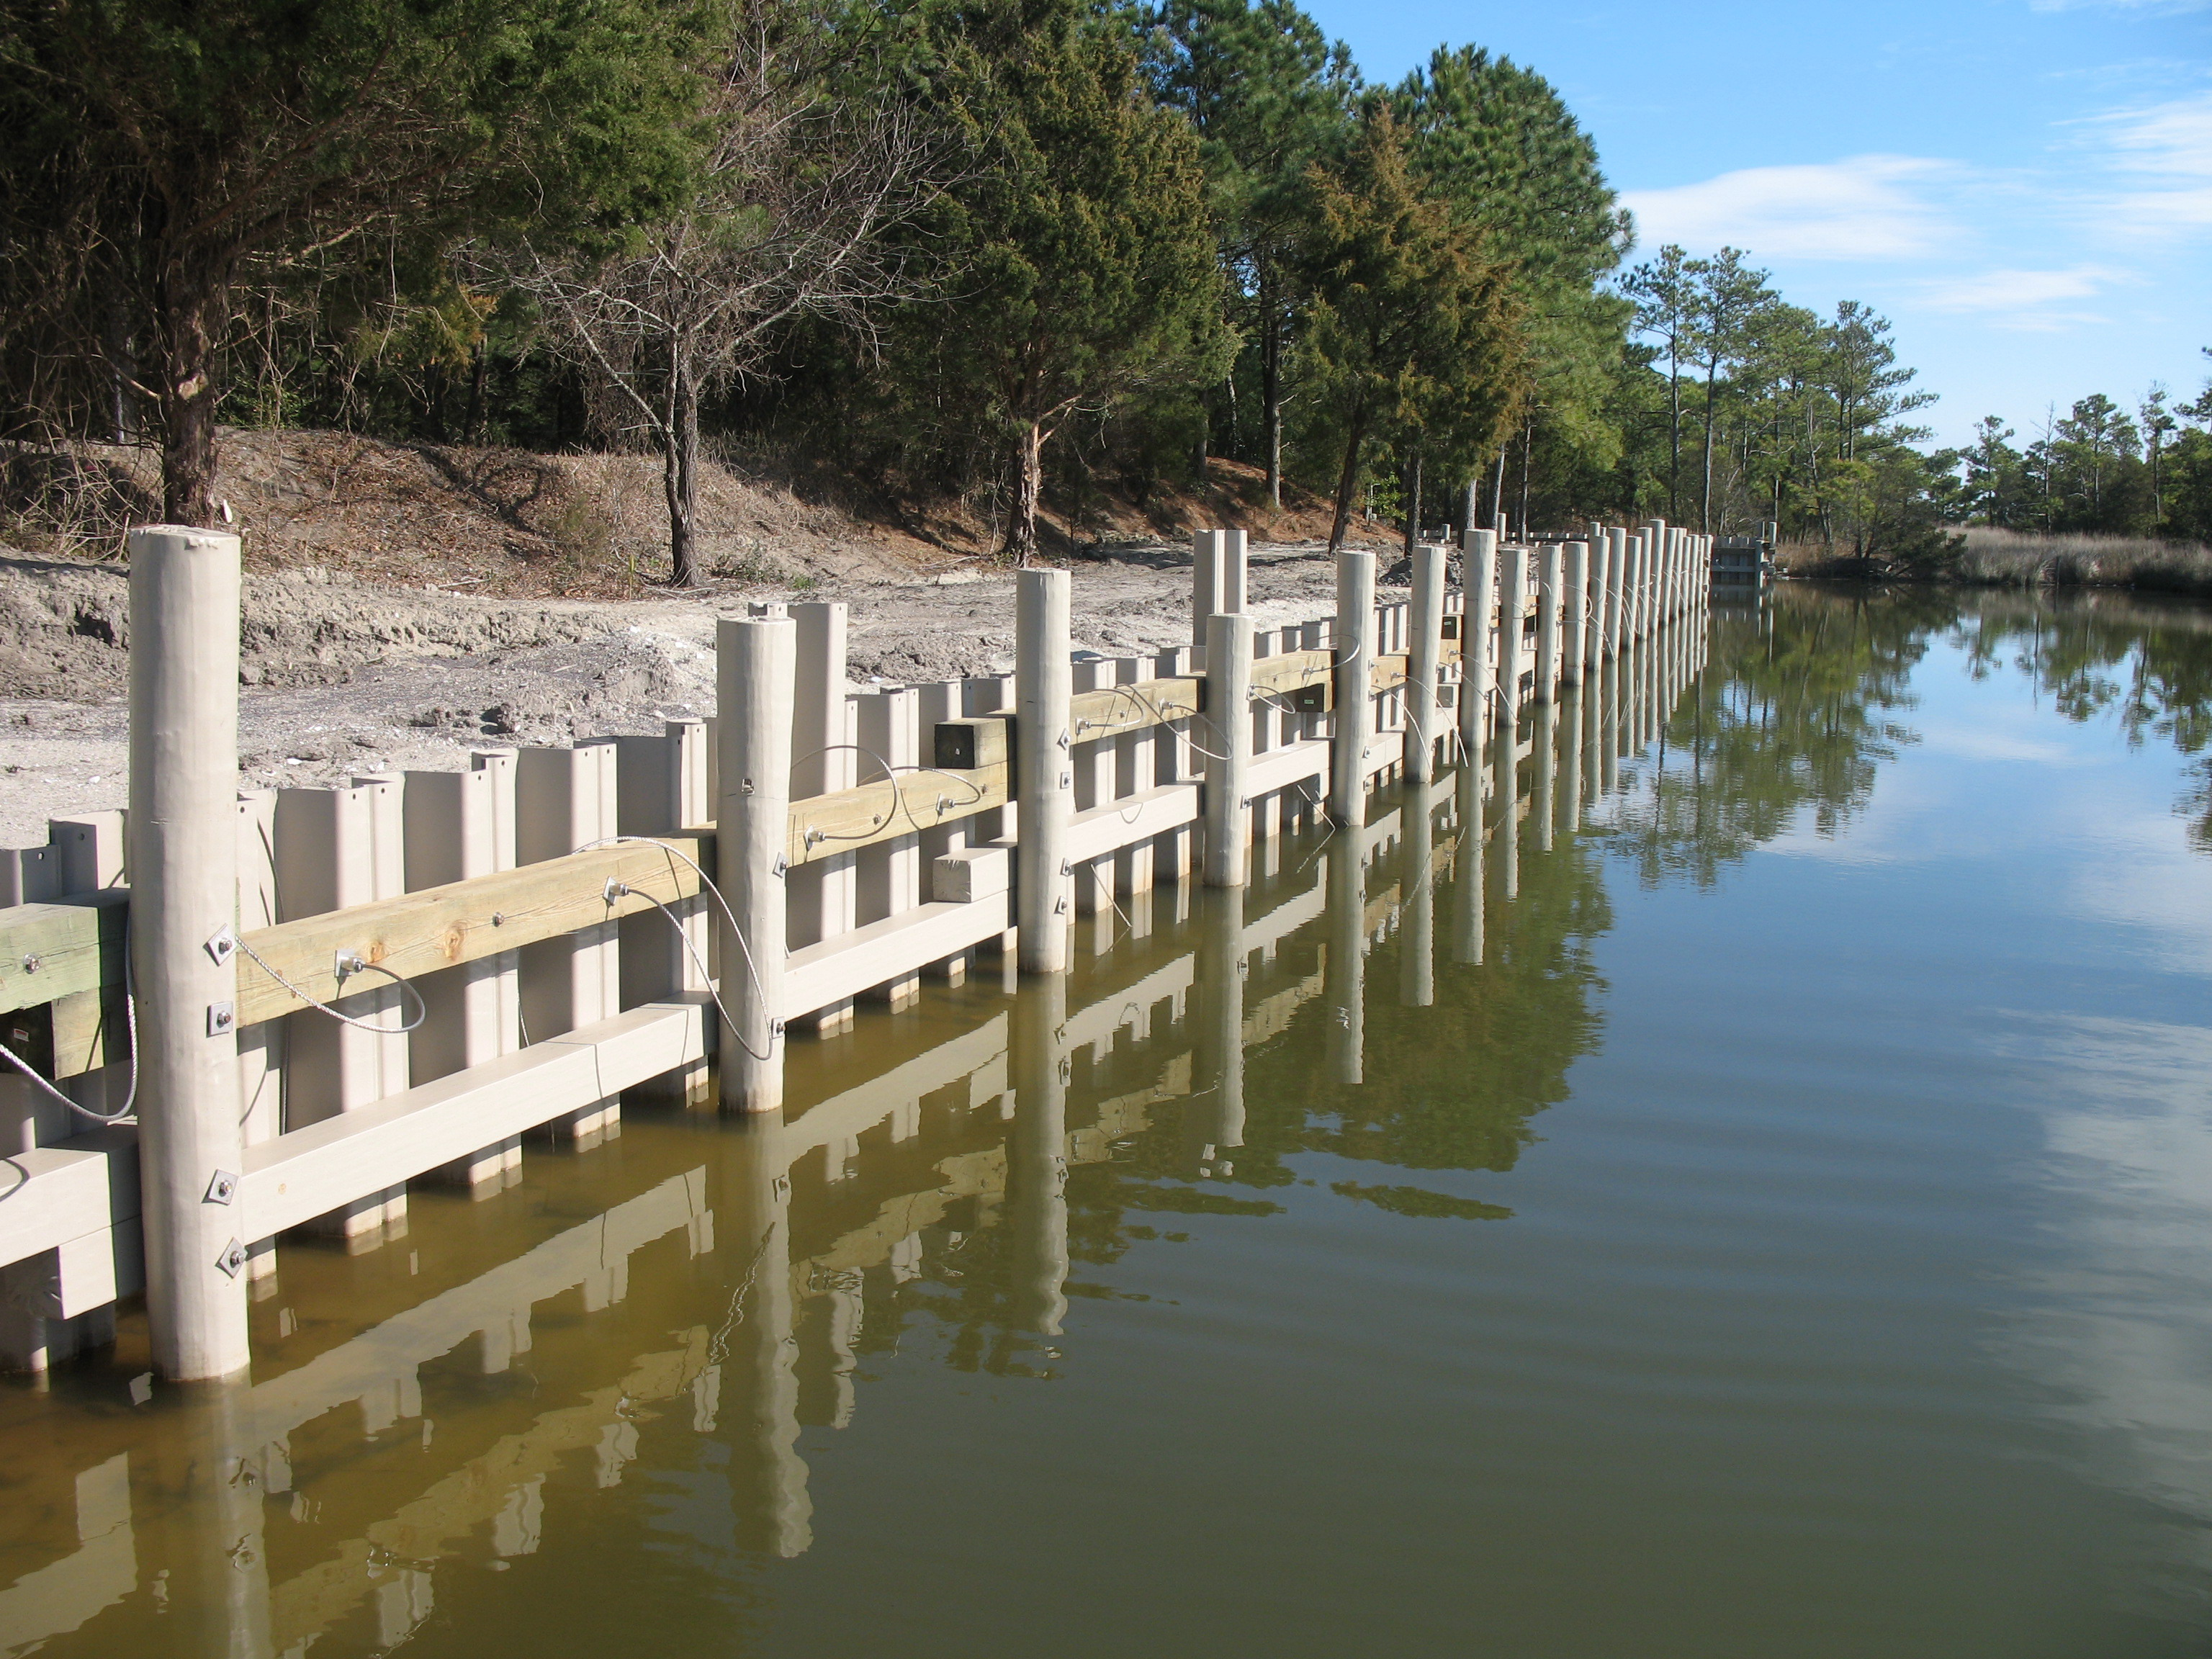 Vinyl Sheet Piling for Sea Wall – USA - Secured with Platipus B6 anchors